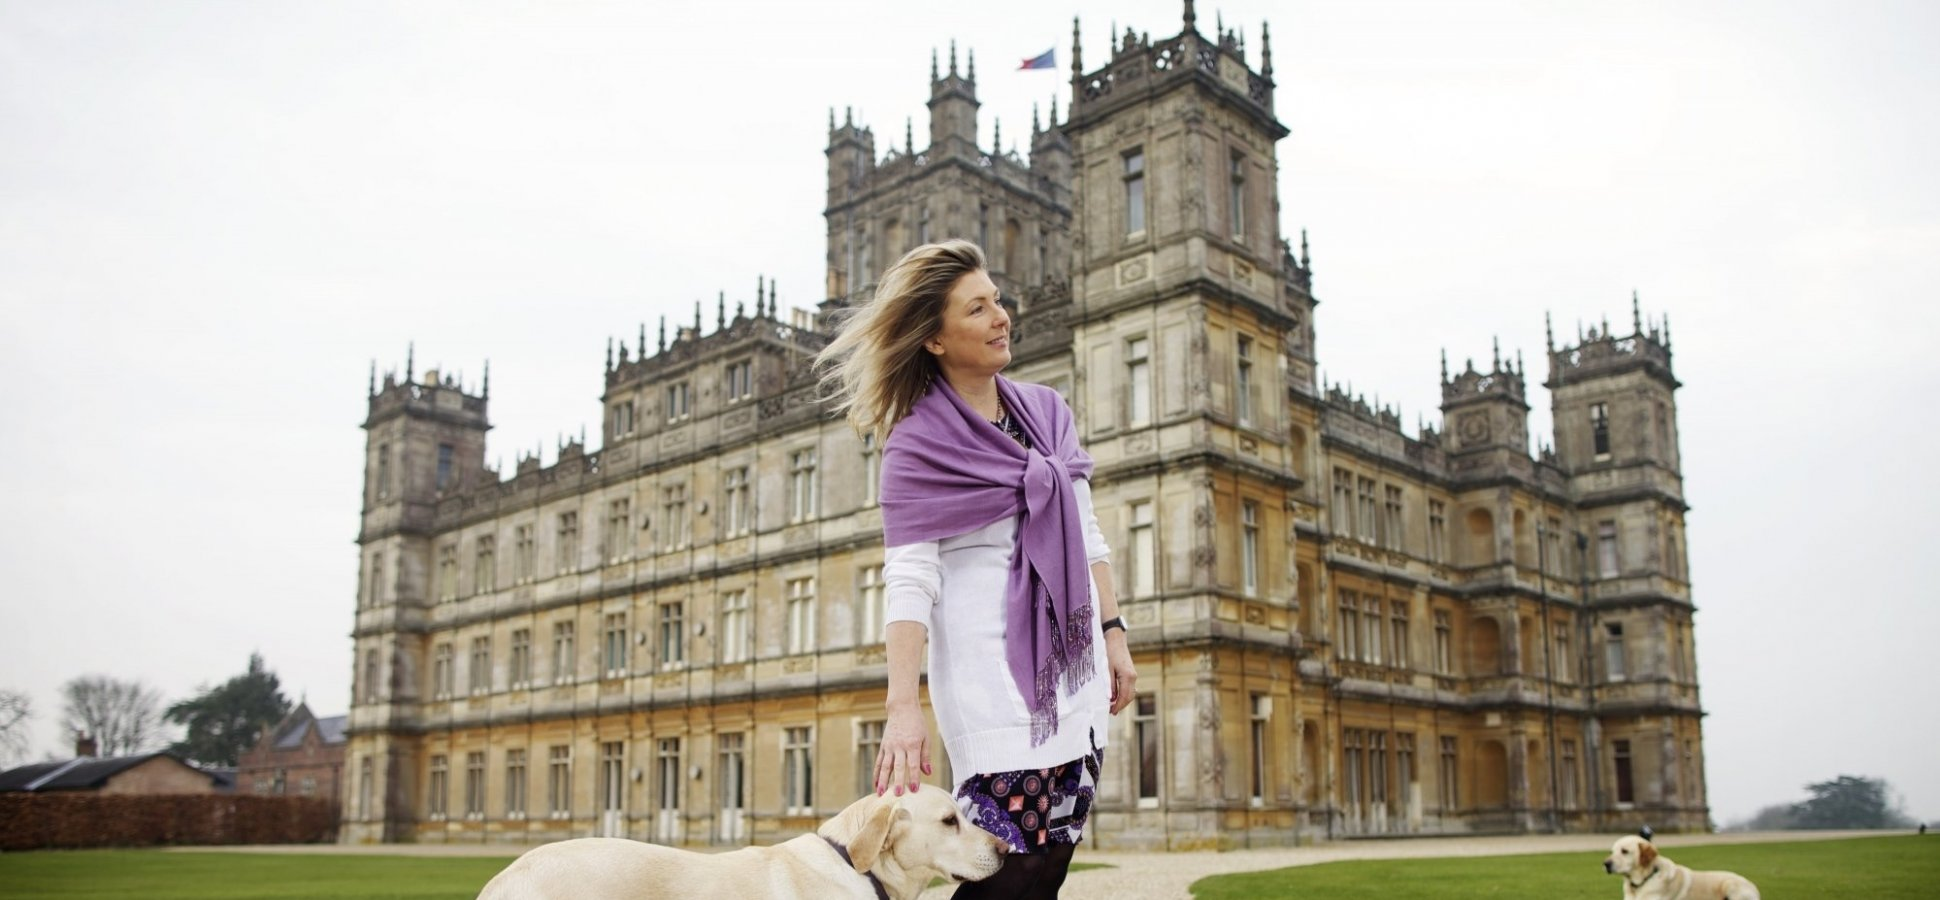 Airbnb Offers 1 Night in Downton Abbey Castle for $187